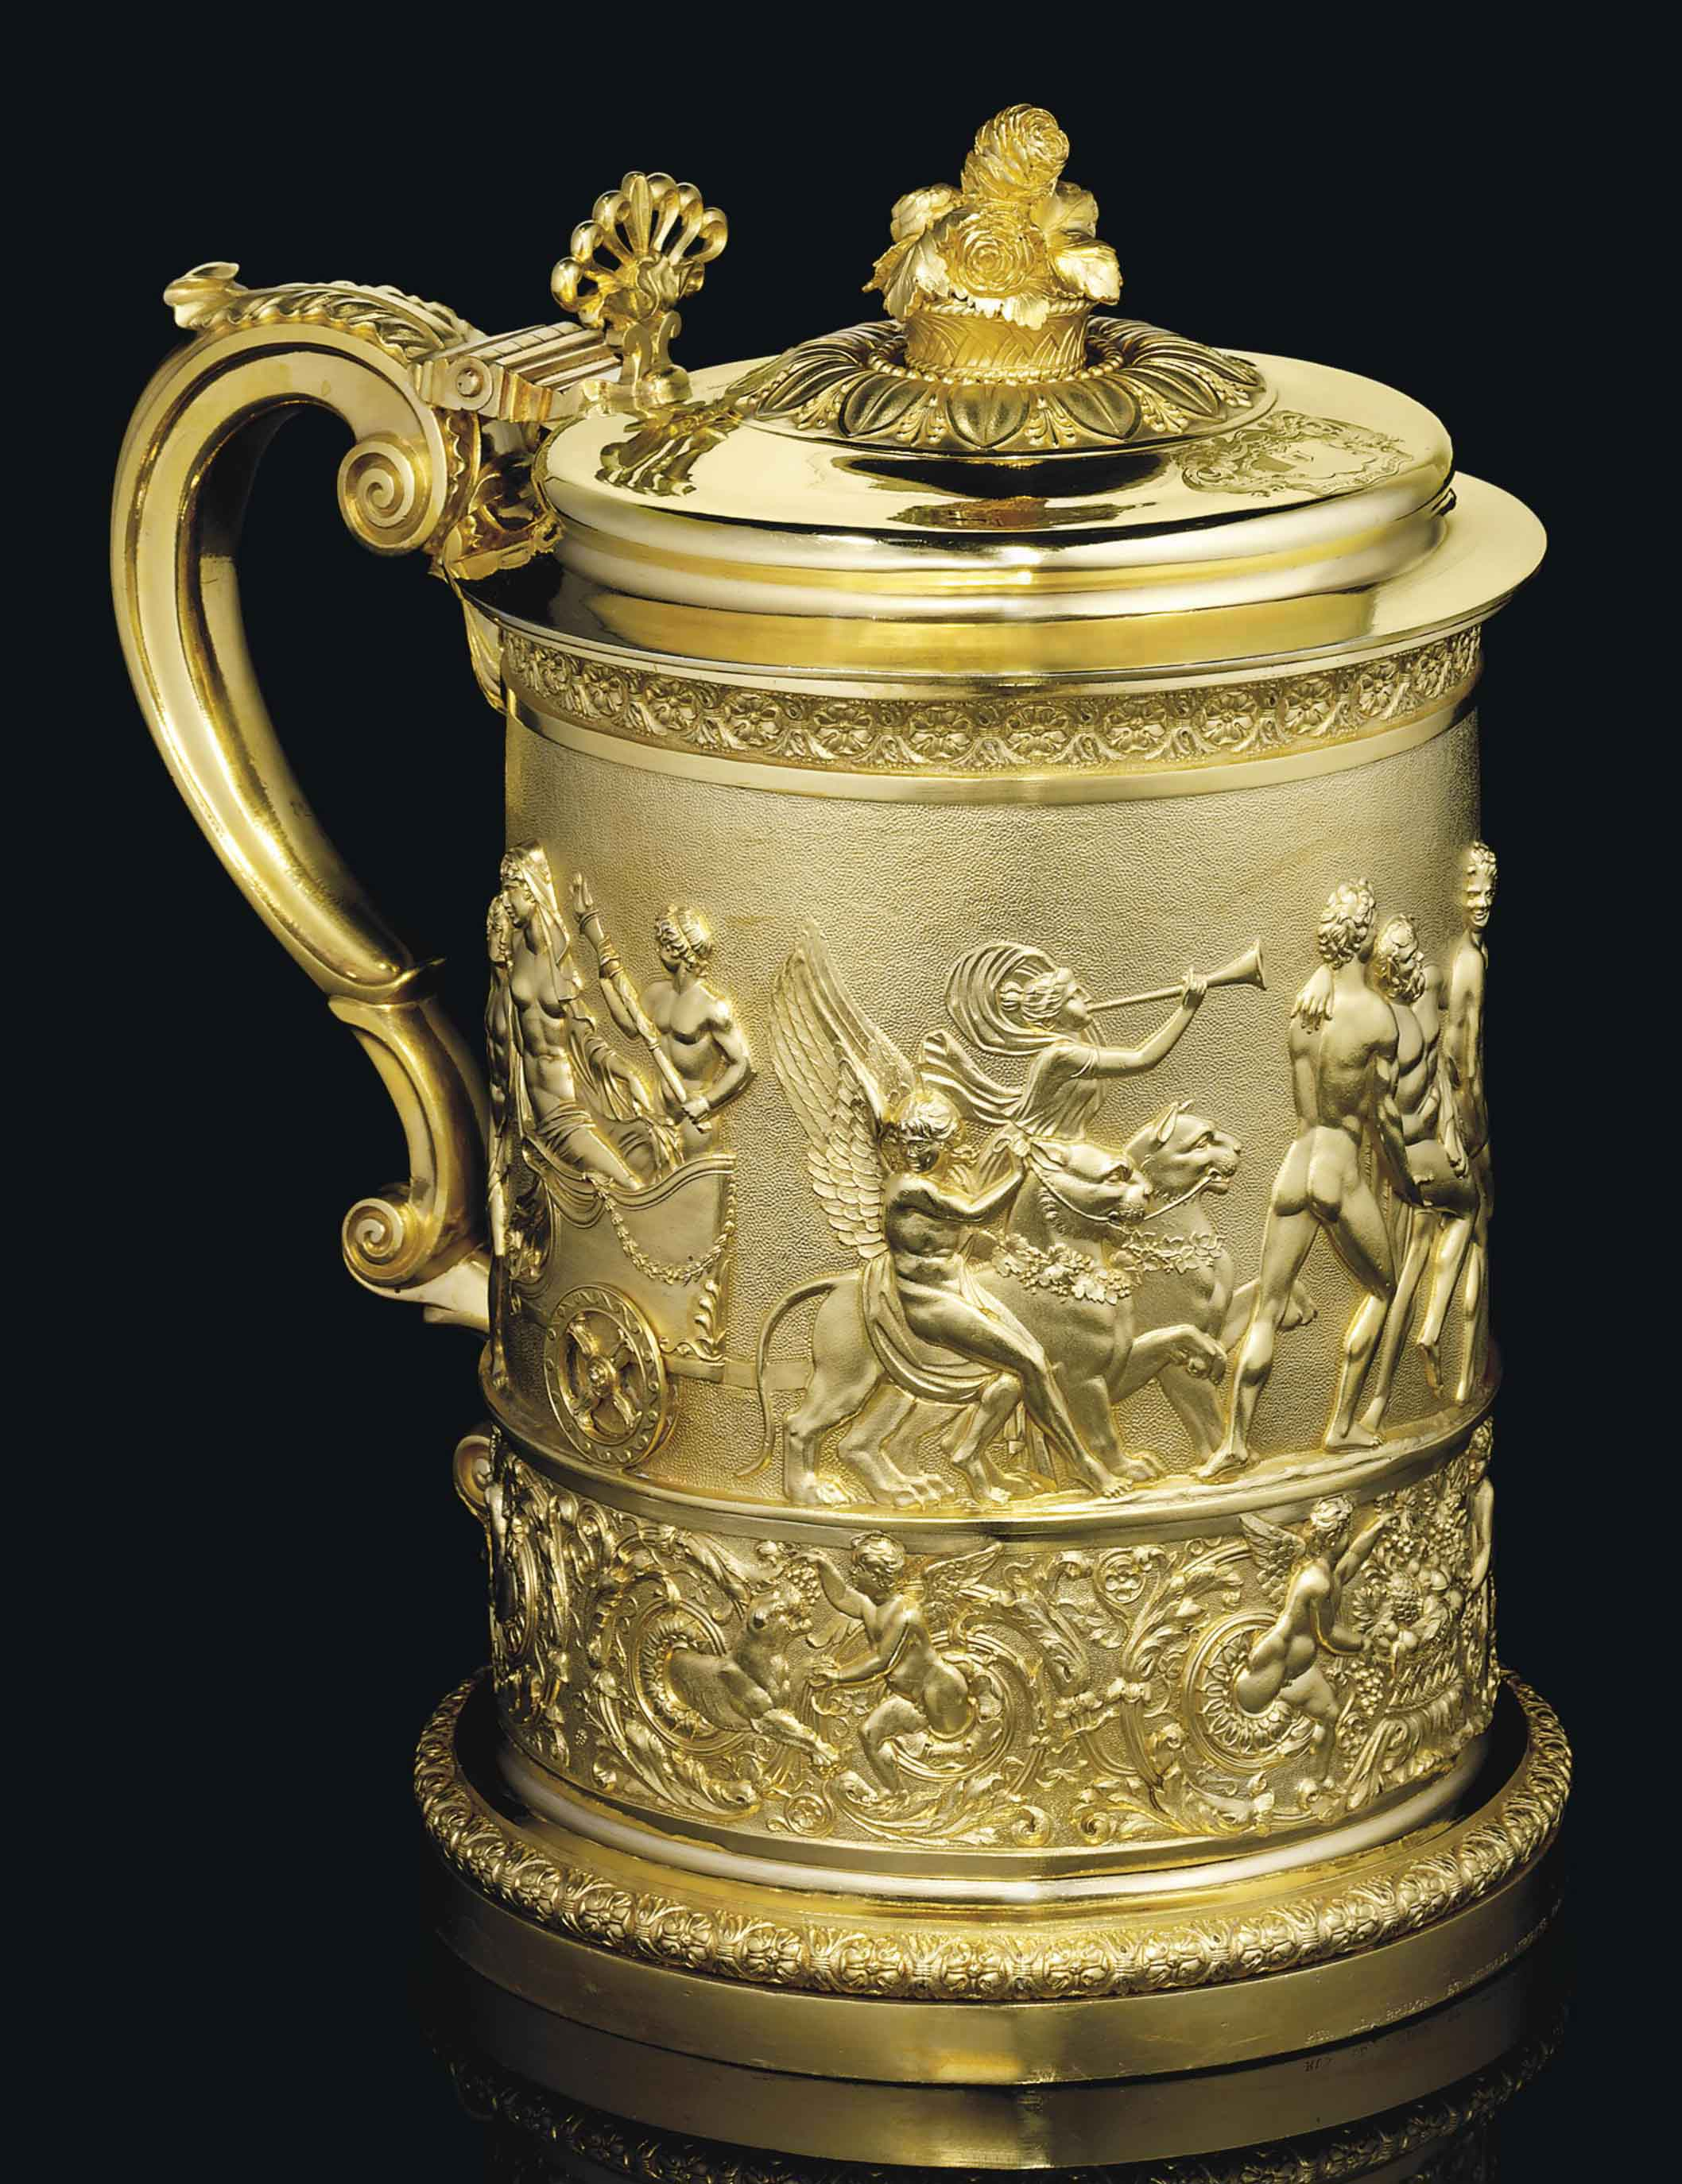 A GEORGE IV SILVER-GILT TANKARD FROM THE SUTTON SERVICE